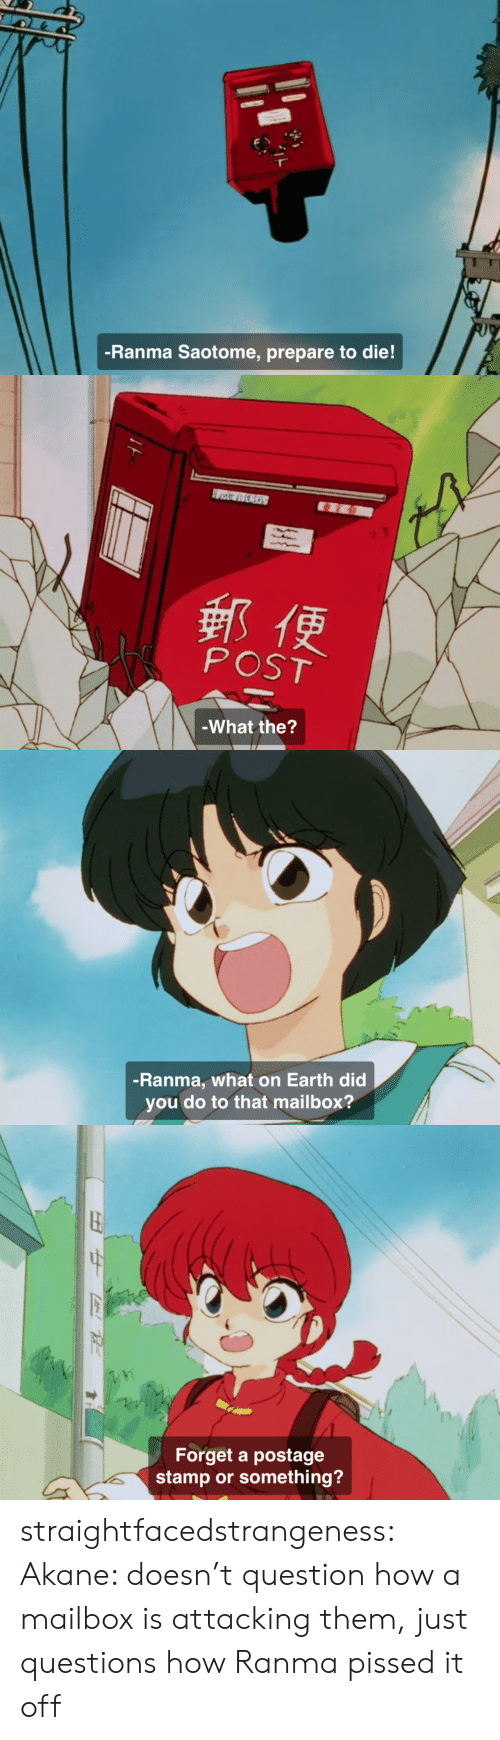 pissed: -Ranma Saotome, prepare to die!   郵便  POST  -What the?   -Ranma, what on Earth did  you do to that mailbox?   Forget a postage  stamp or something? straightfacedstrangeness:  Akane: doesn't question how a mailbox is attacking them, just questions how Ranma pissed it off